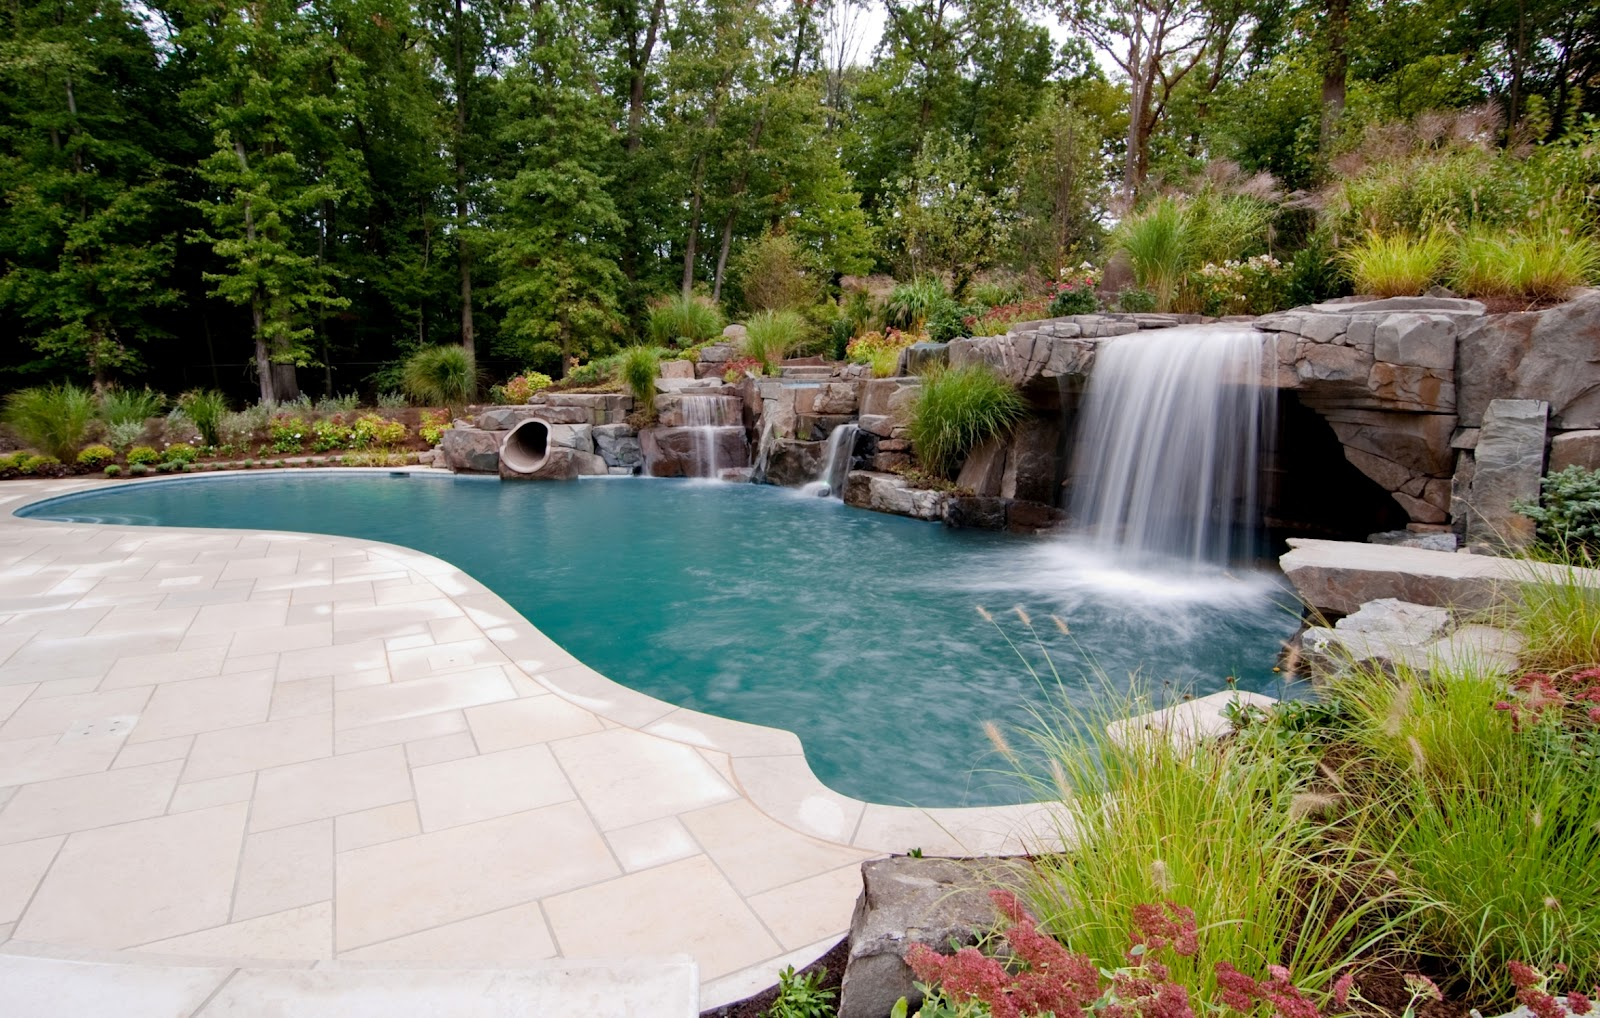 Pin by allyson james on amazing pools hot tubs pinterest for Beautiful swimming pools with waterfalls